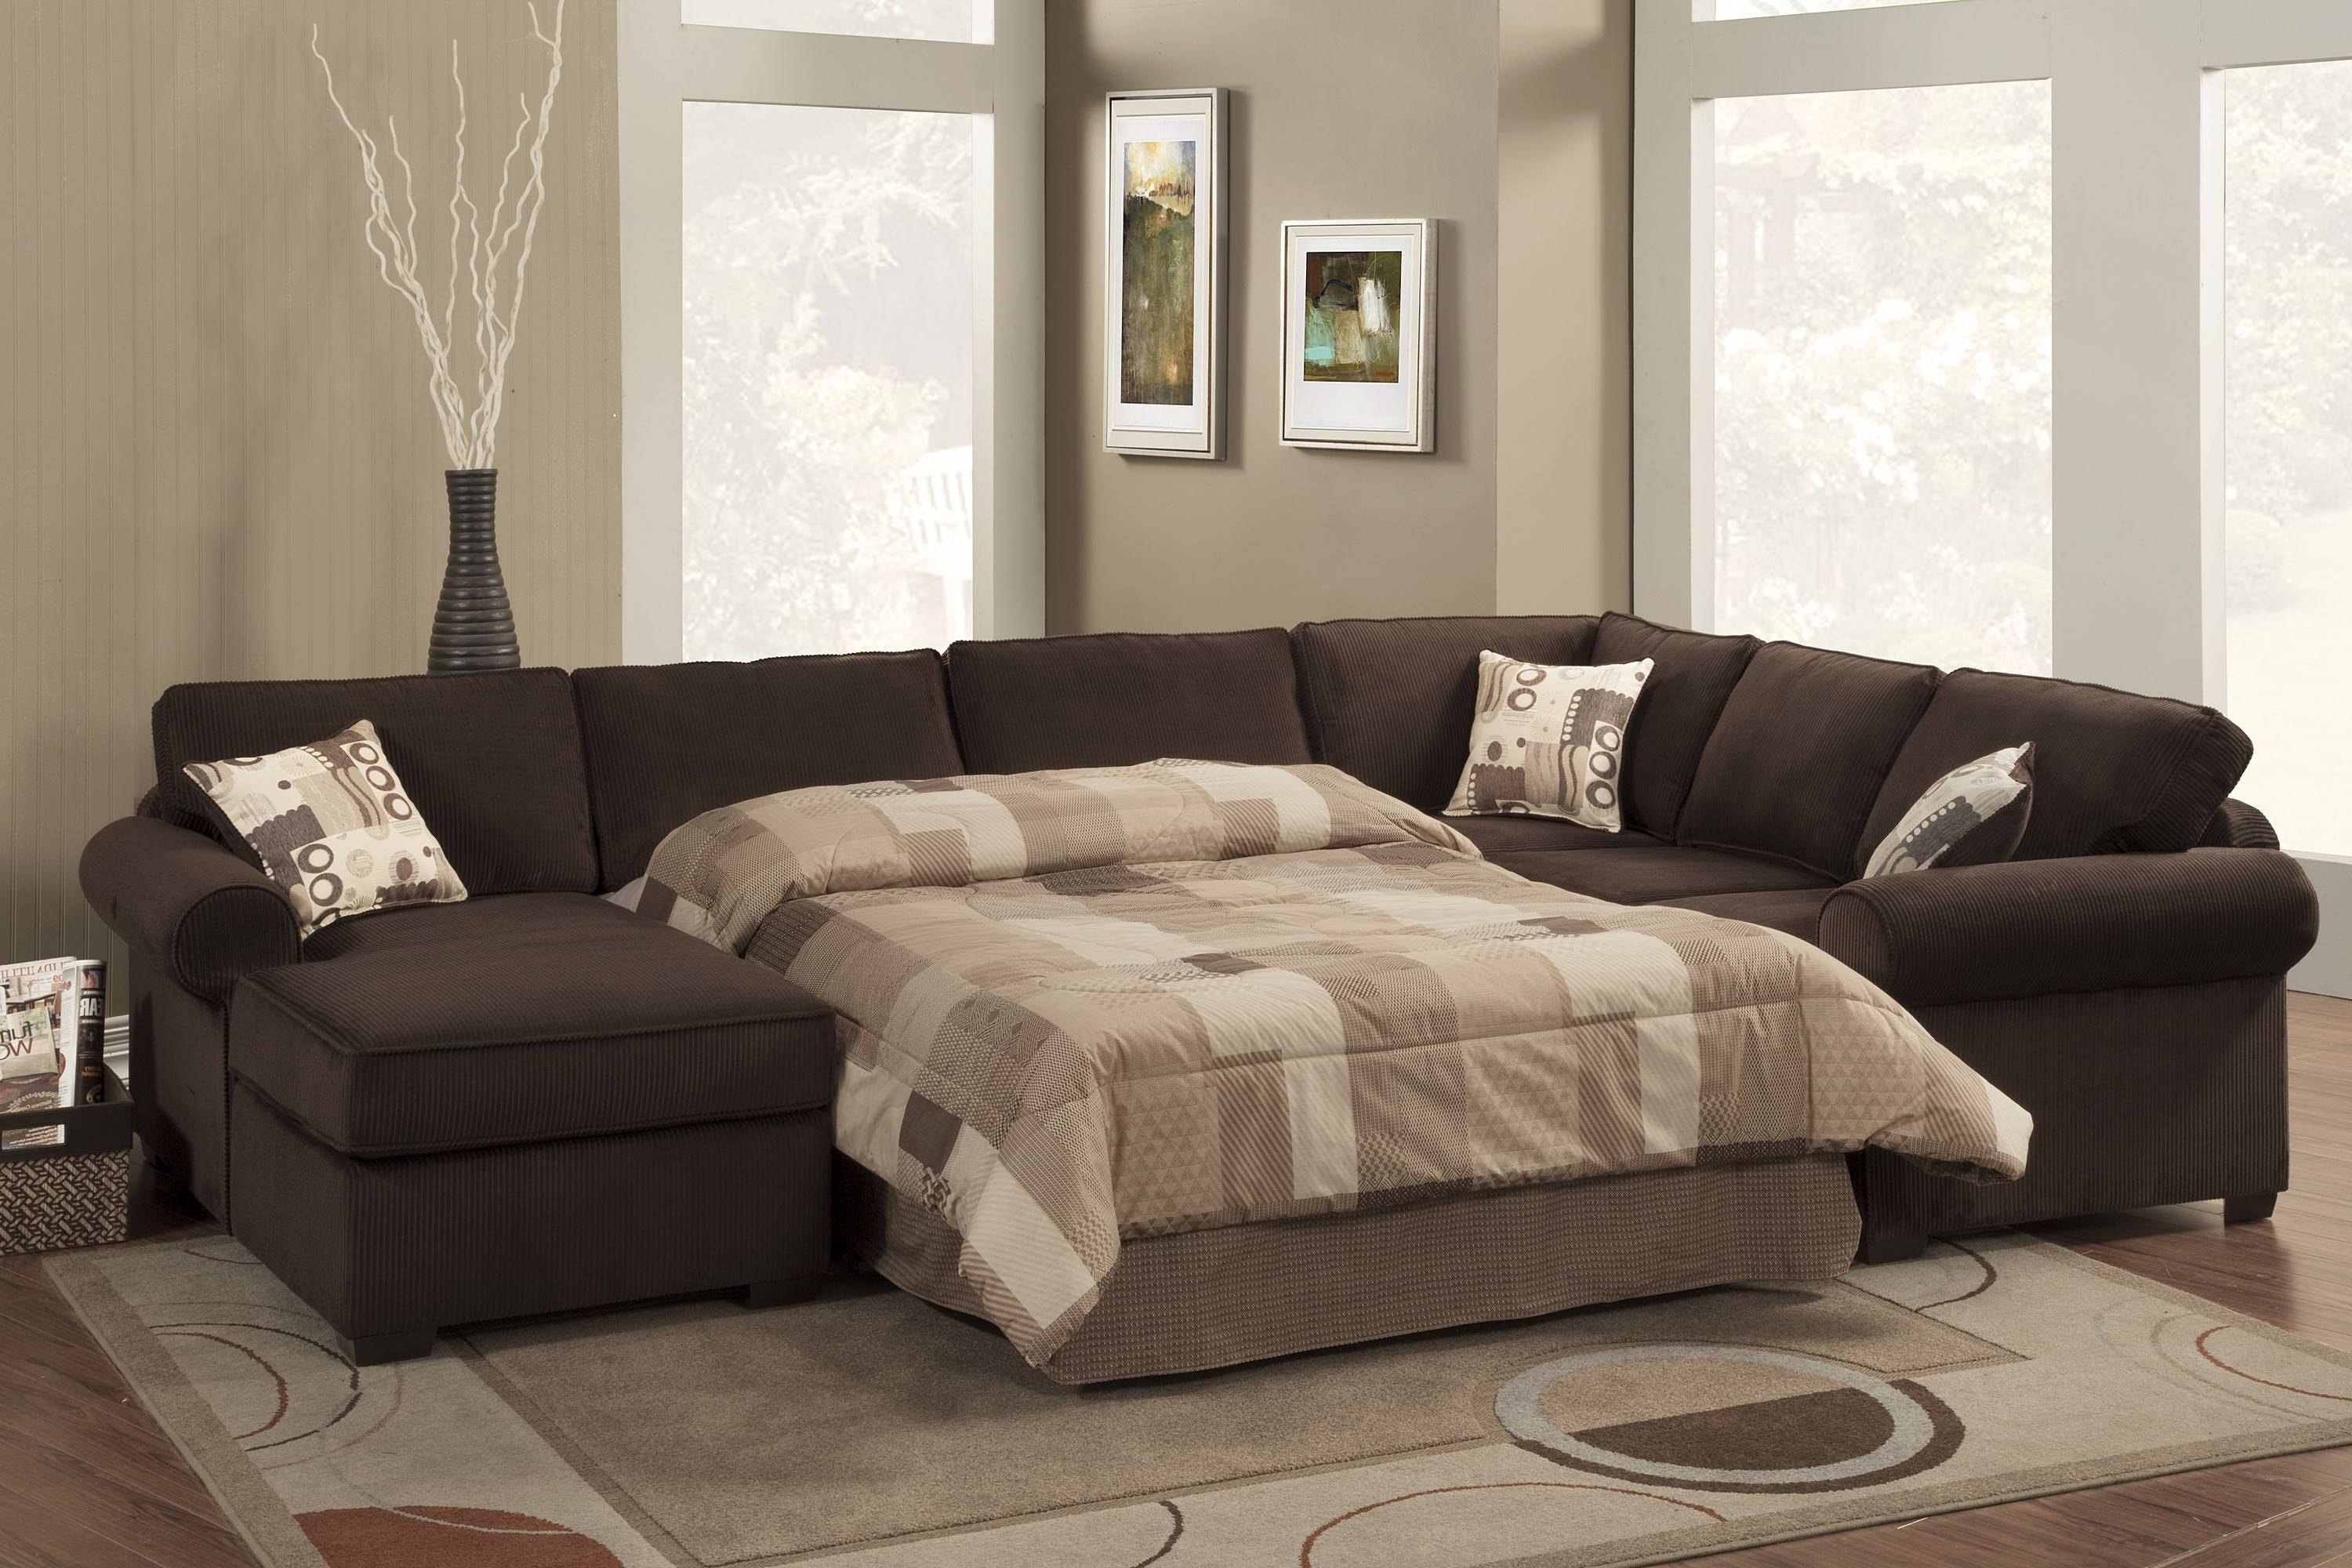 Cheap Sectional Sofas With Wide Sectional Couch With New Sectional In Well Known Sectional Sofas (View 7 of 15)